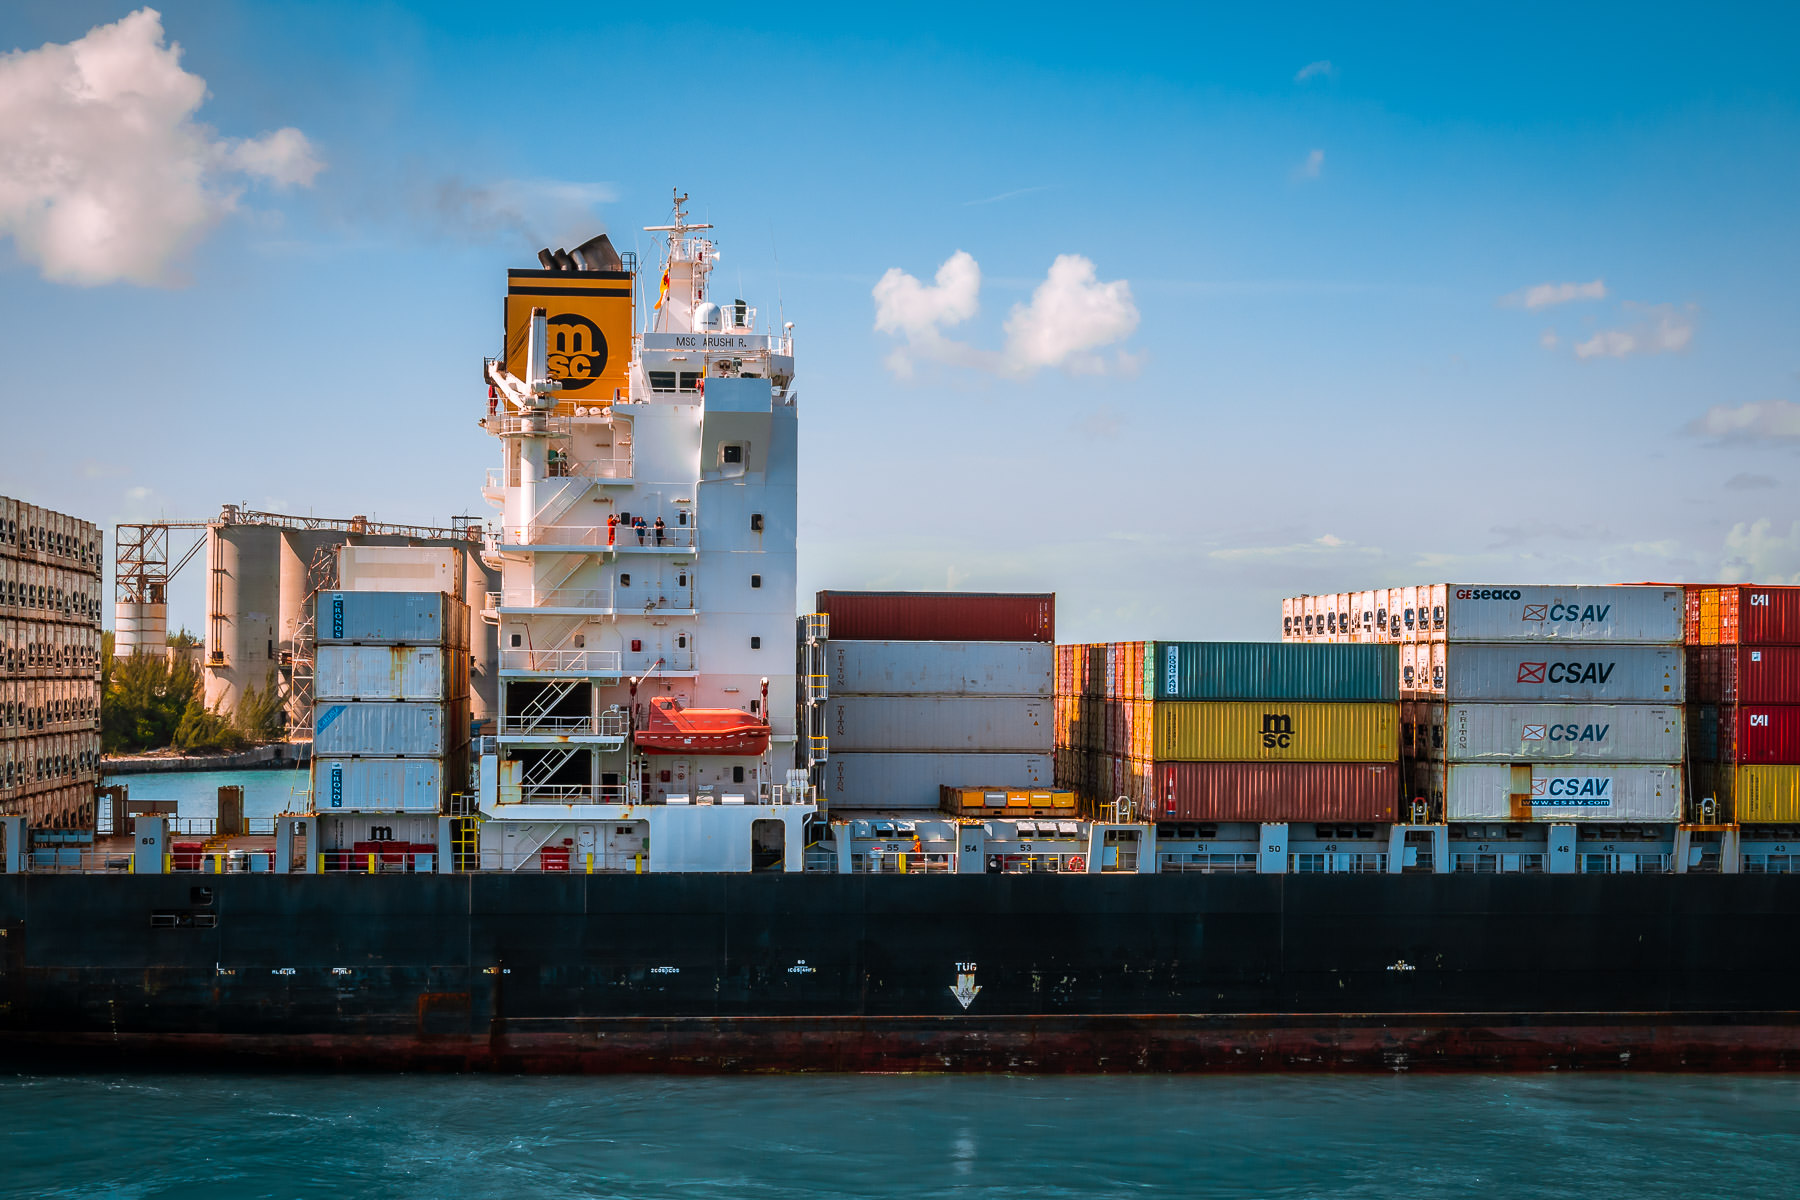 The container ship MSC Arushi R. sails into Freeport, Bahamas.